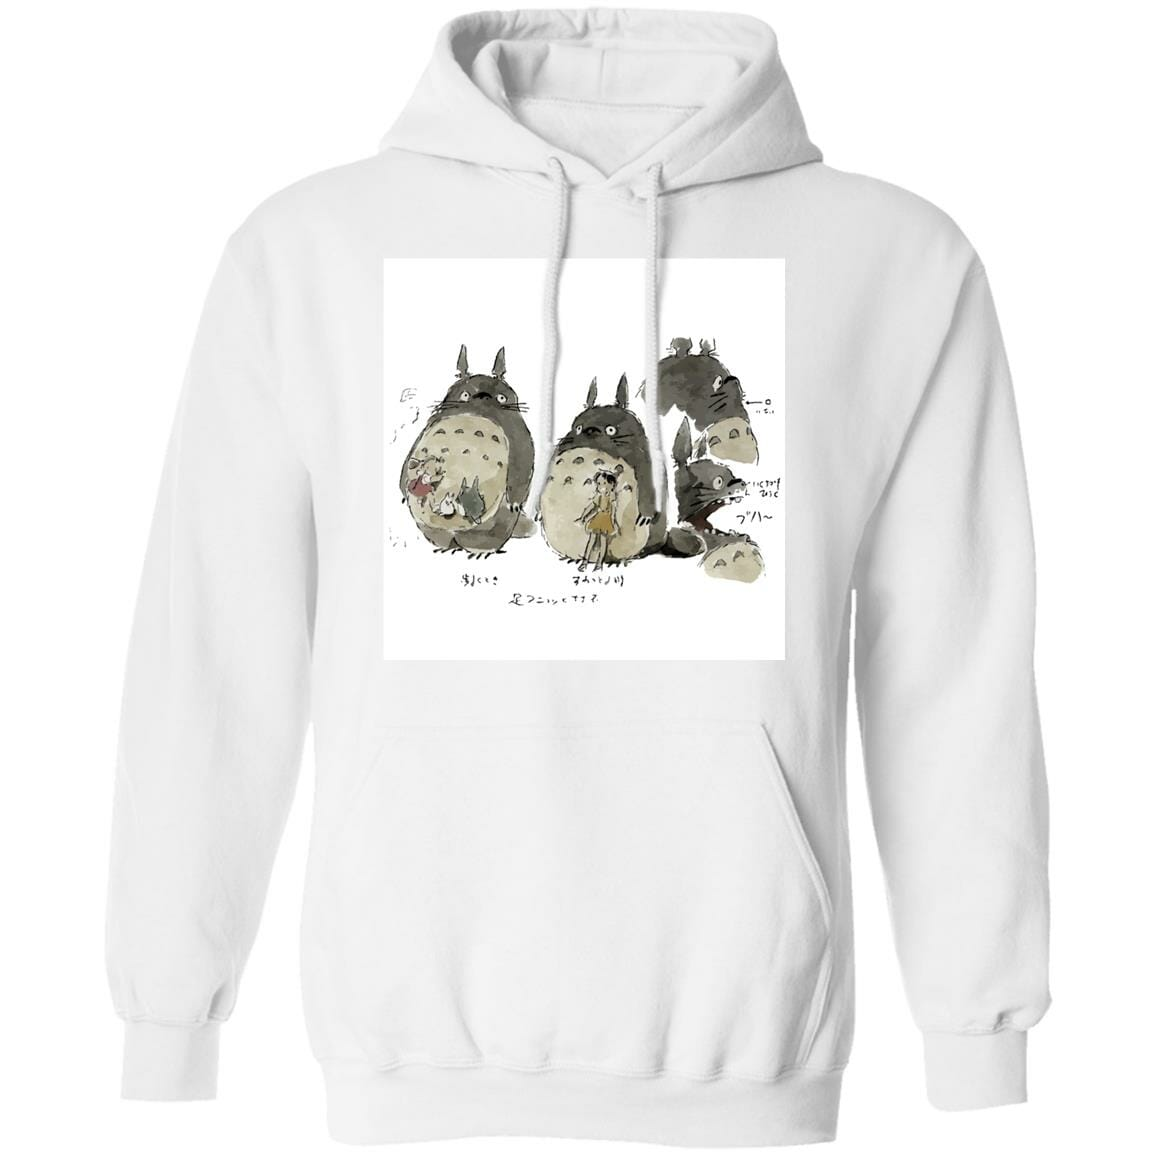 My Neighbor Totoro Sketch Hoodie Unisex